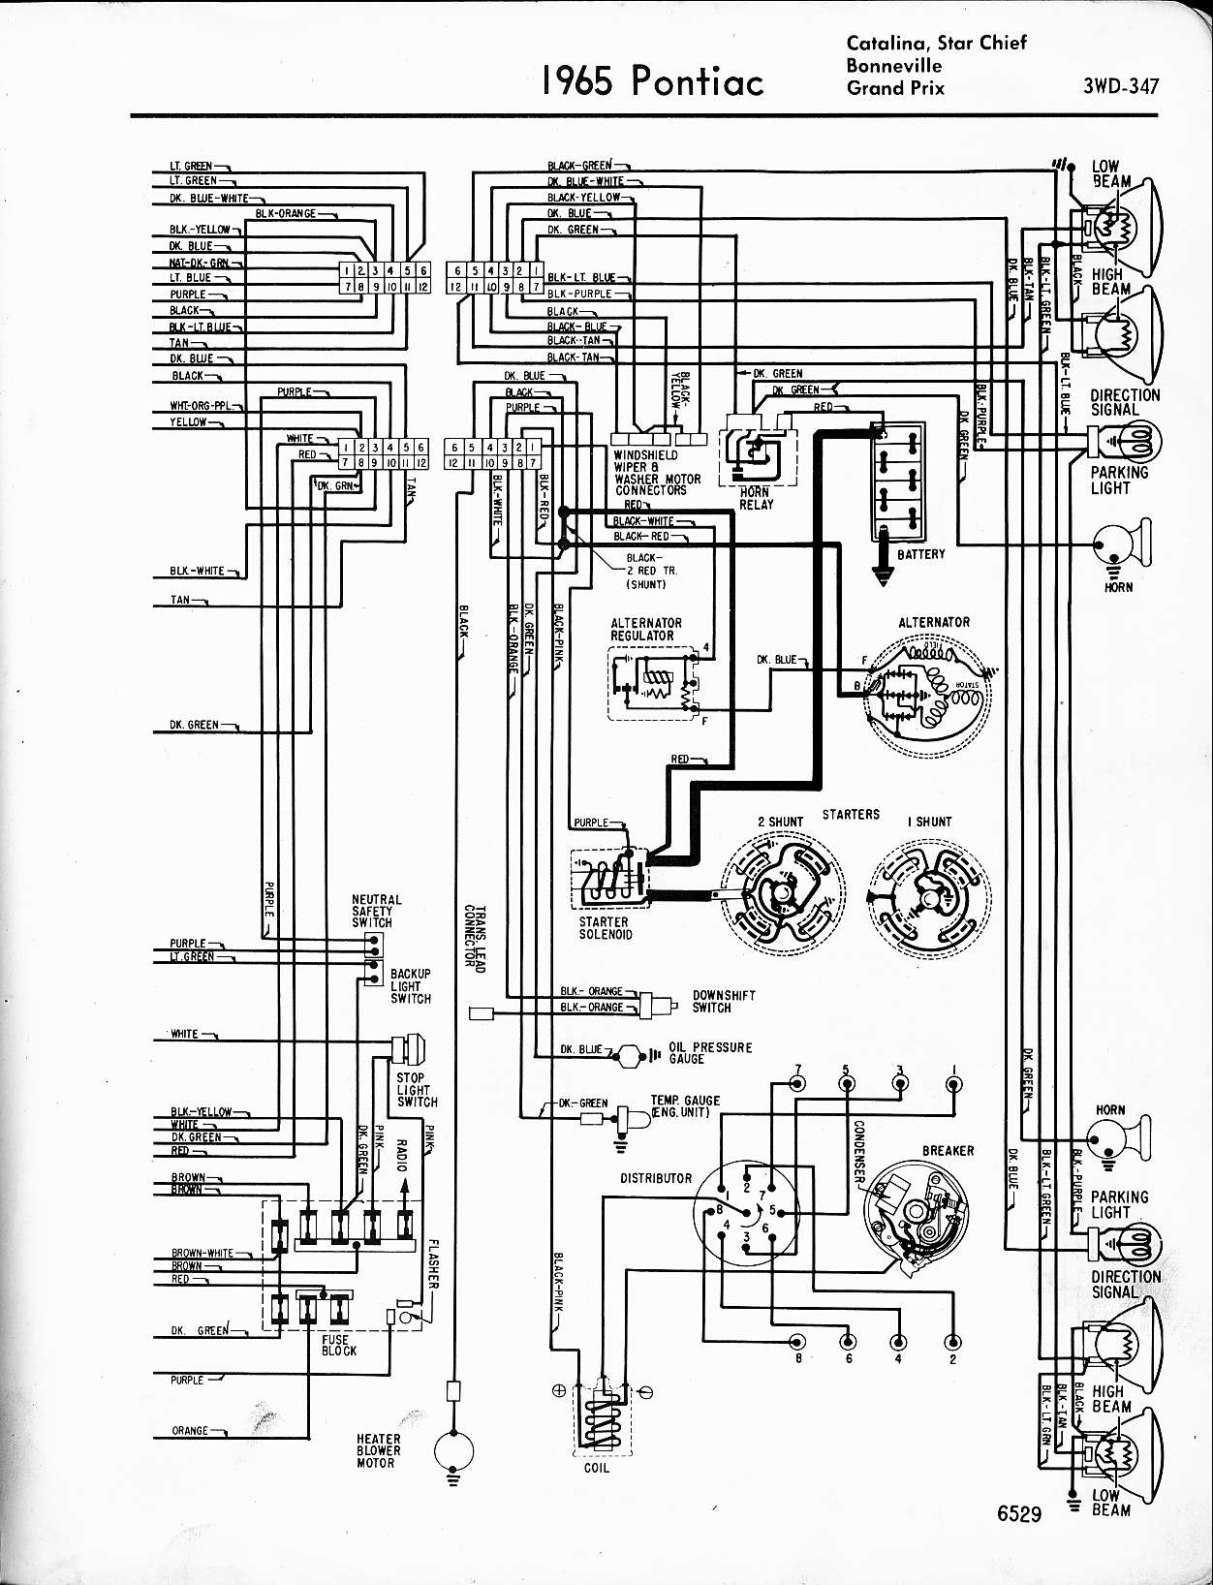 2006 pontiac grand prix wiring diagram wiring diagram e on 2000 pontiac grand prix fuse box 97 2004 pontiac grand prix headlight wiring harness diagram source